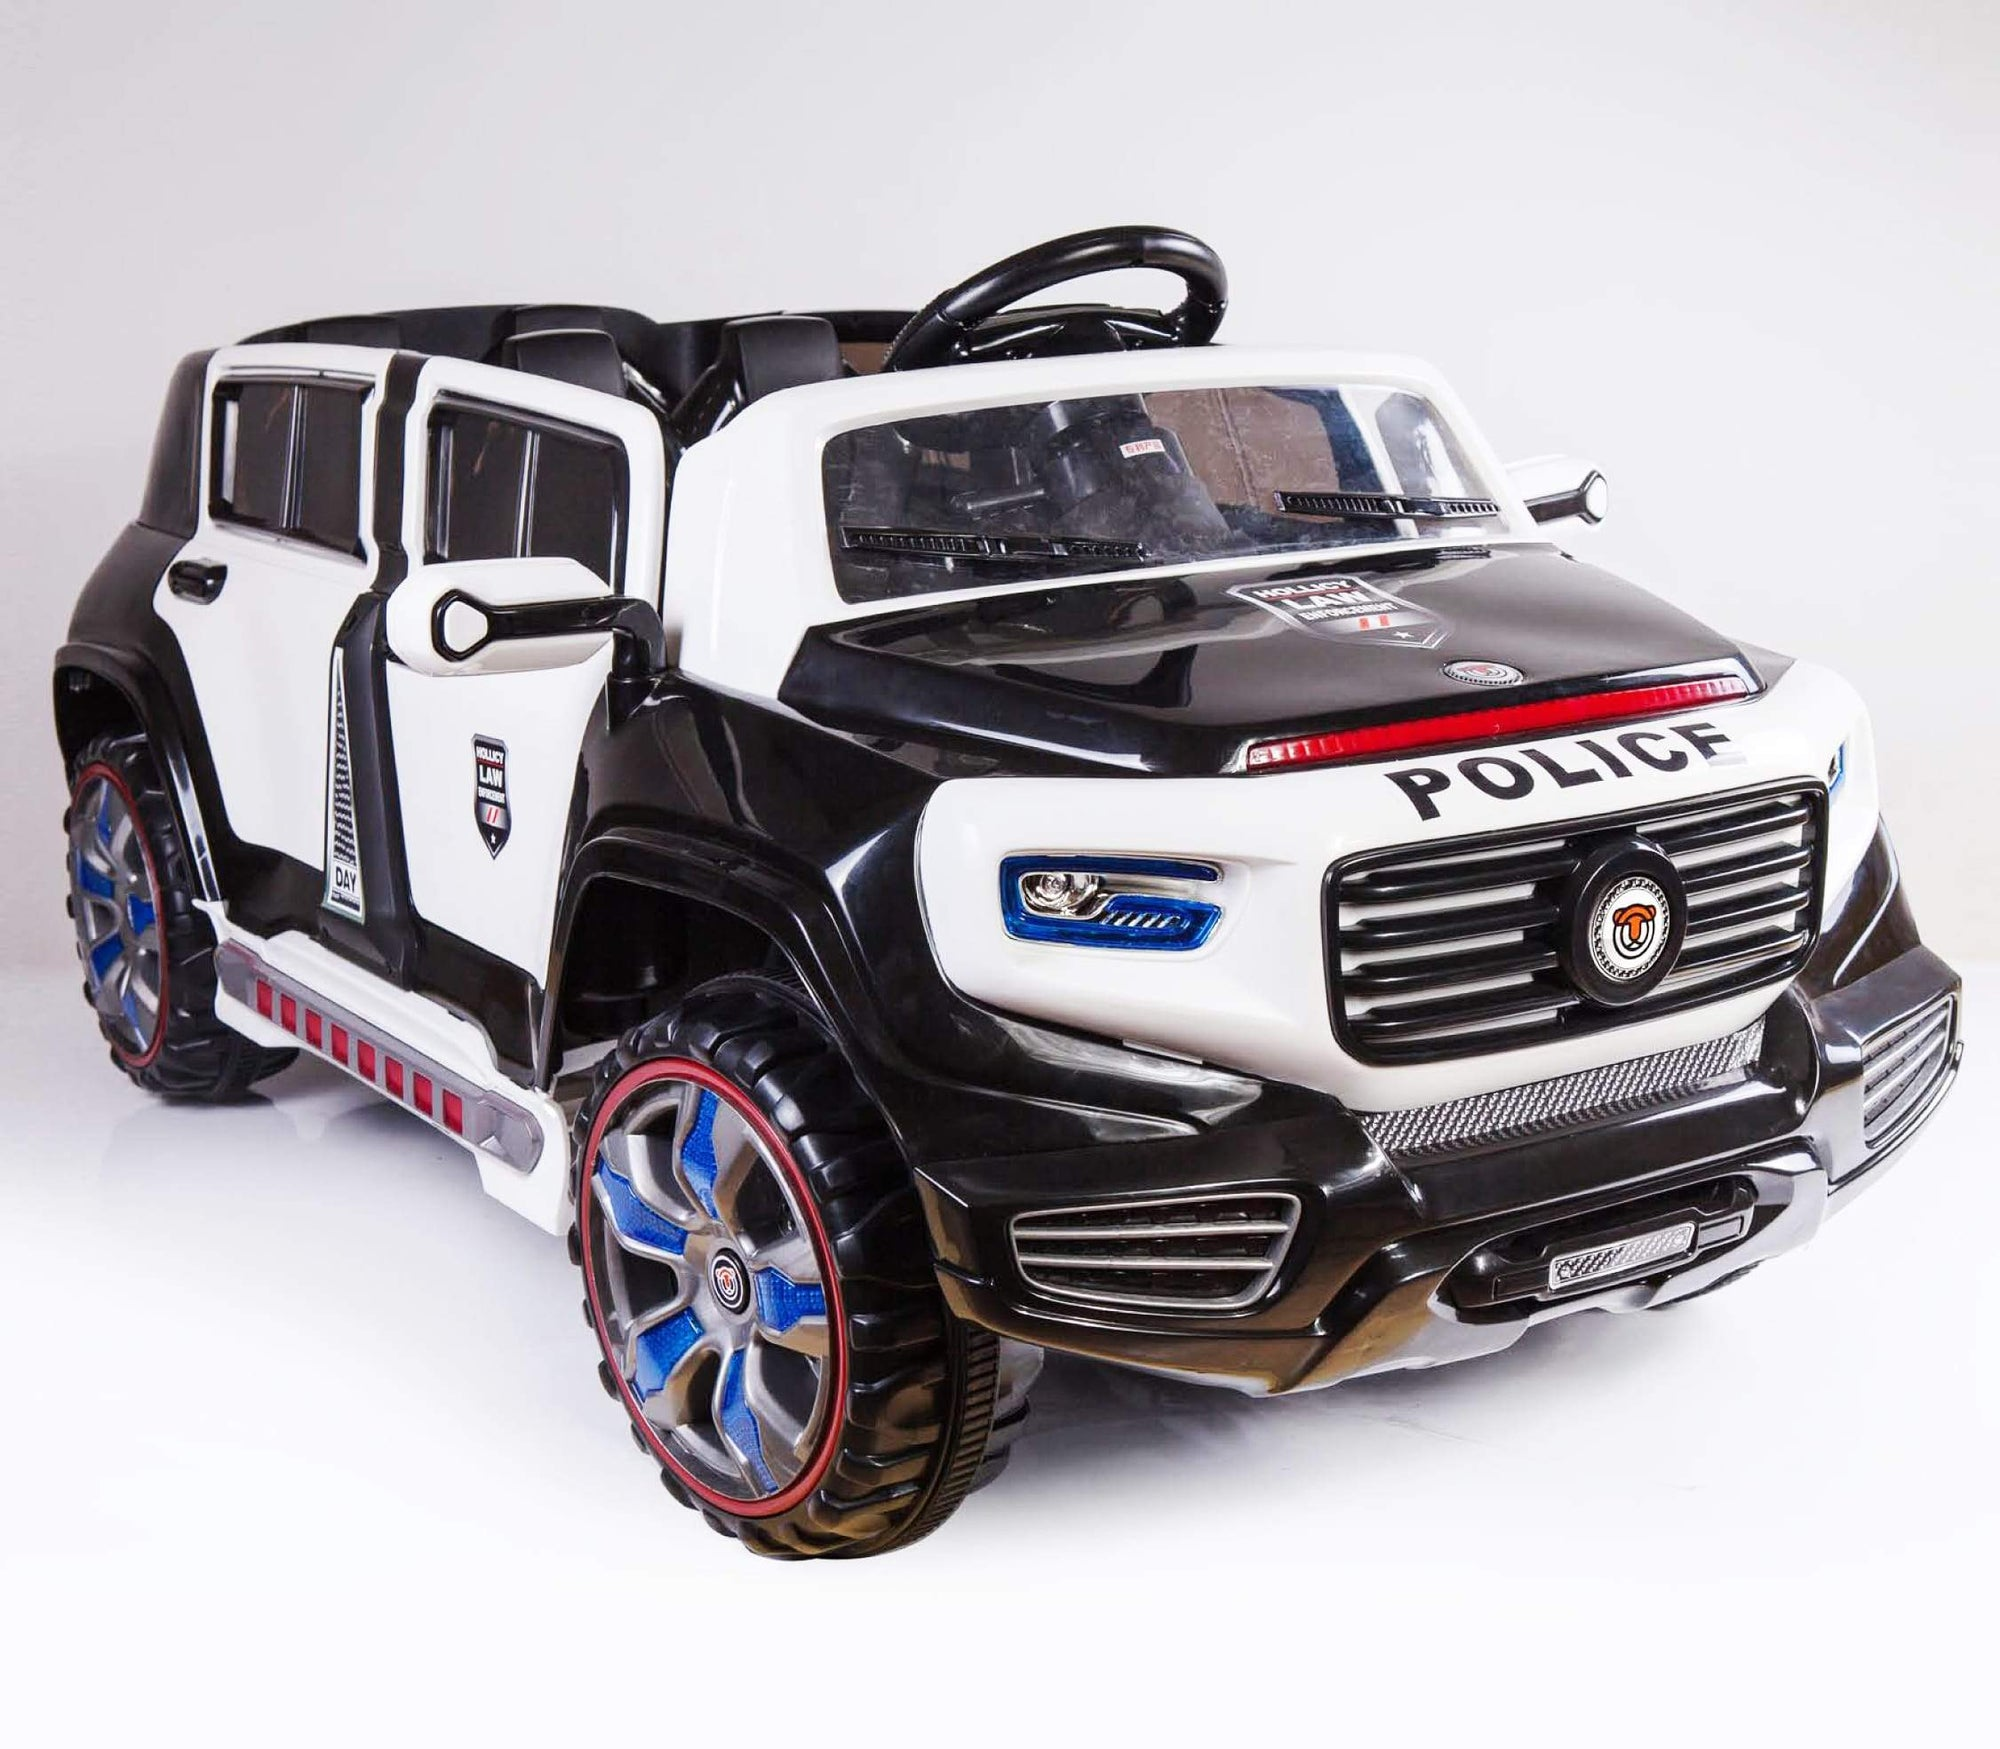 2 Seater Kid S Ride On Police Car 12v With Remote Control In Black Kidcarshop